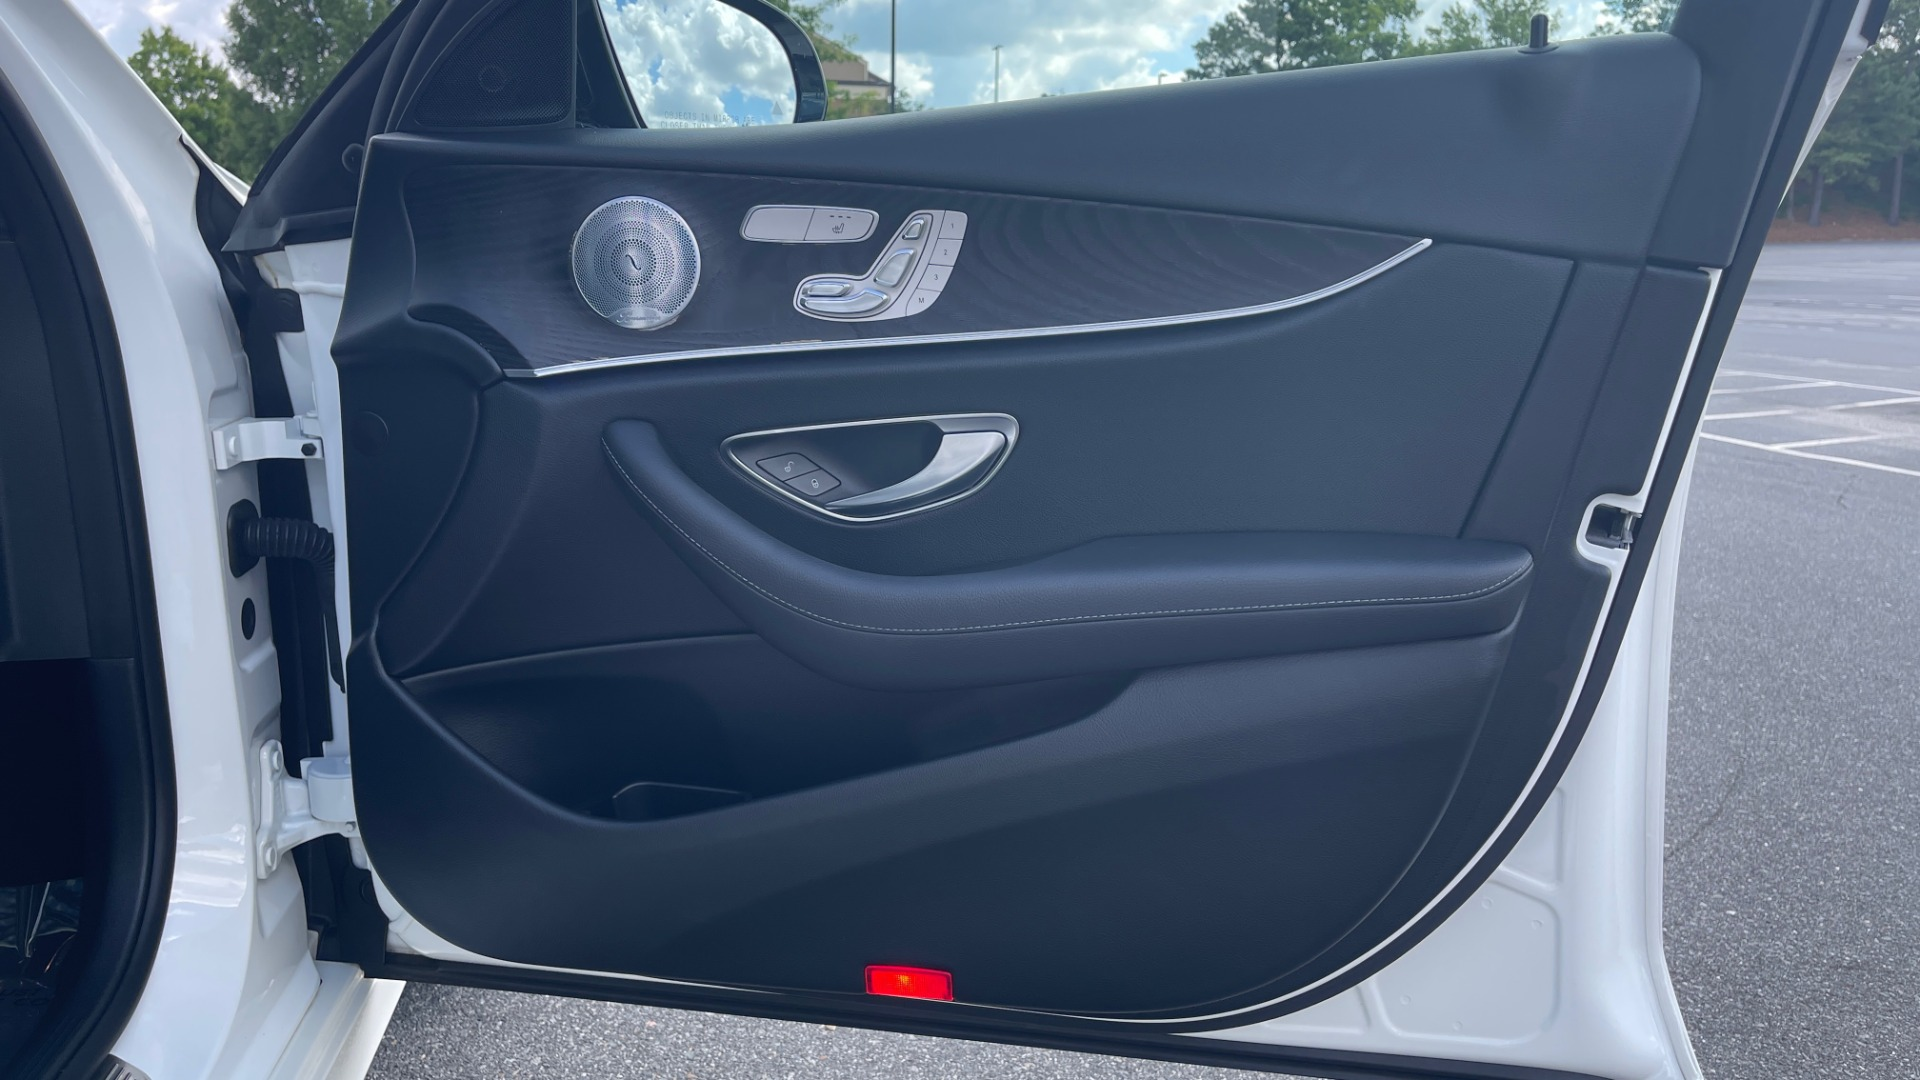 Used 2018 Mercedes-Benz E-CLASS E 300 PREMIUM / NIGHT PKG / PANO-ROOF / BURMESTER / REARVIEW for sale $42,399 at Formula Imports in Charlotte NC 28227 68